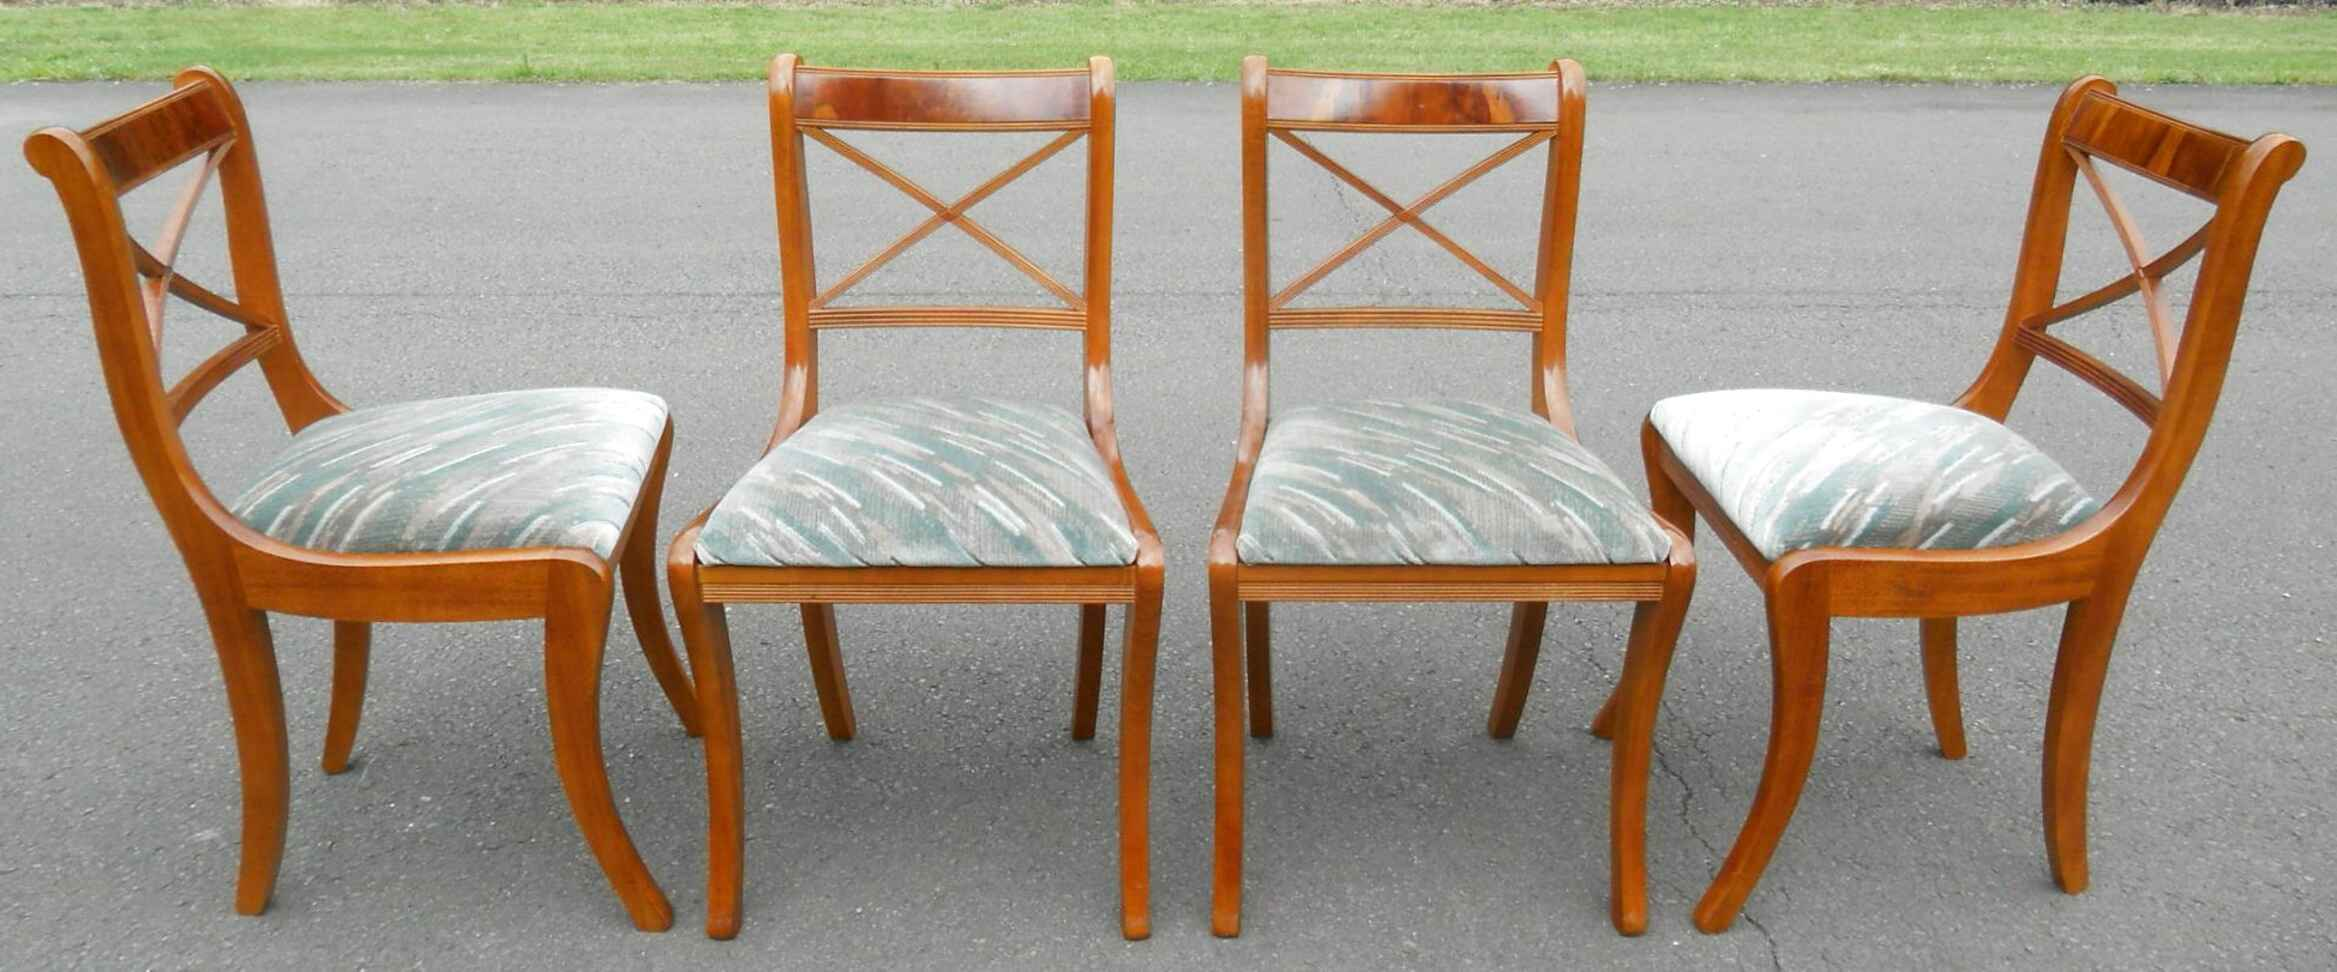 yew dining chairs for sale